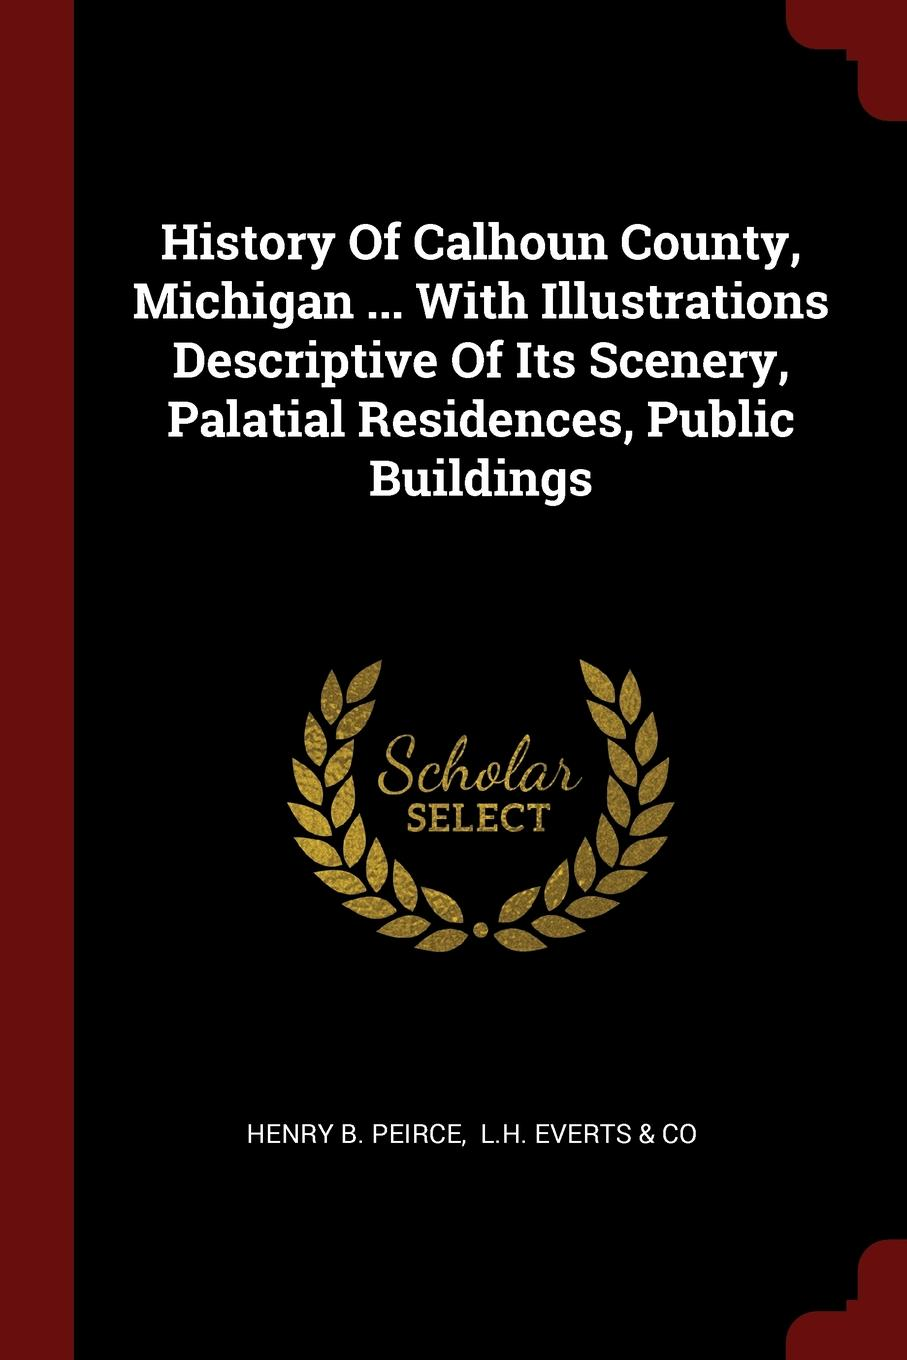 History Of Calhoun County, Michigan ... With Illustrations Descriptive Of Its Scenery, Palatial Residences, Public Buildings